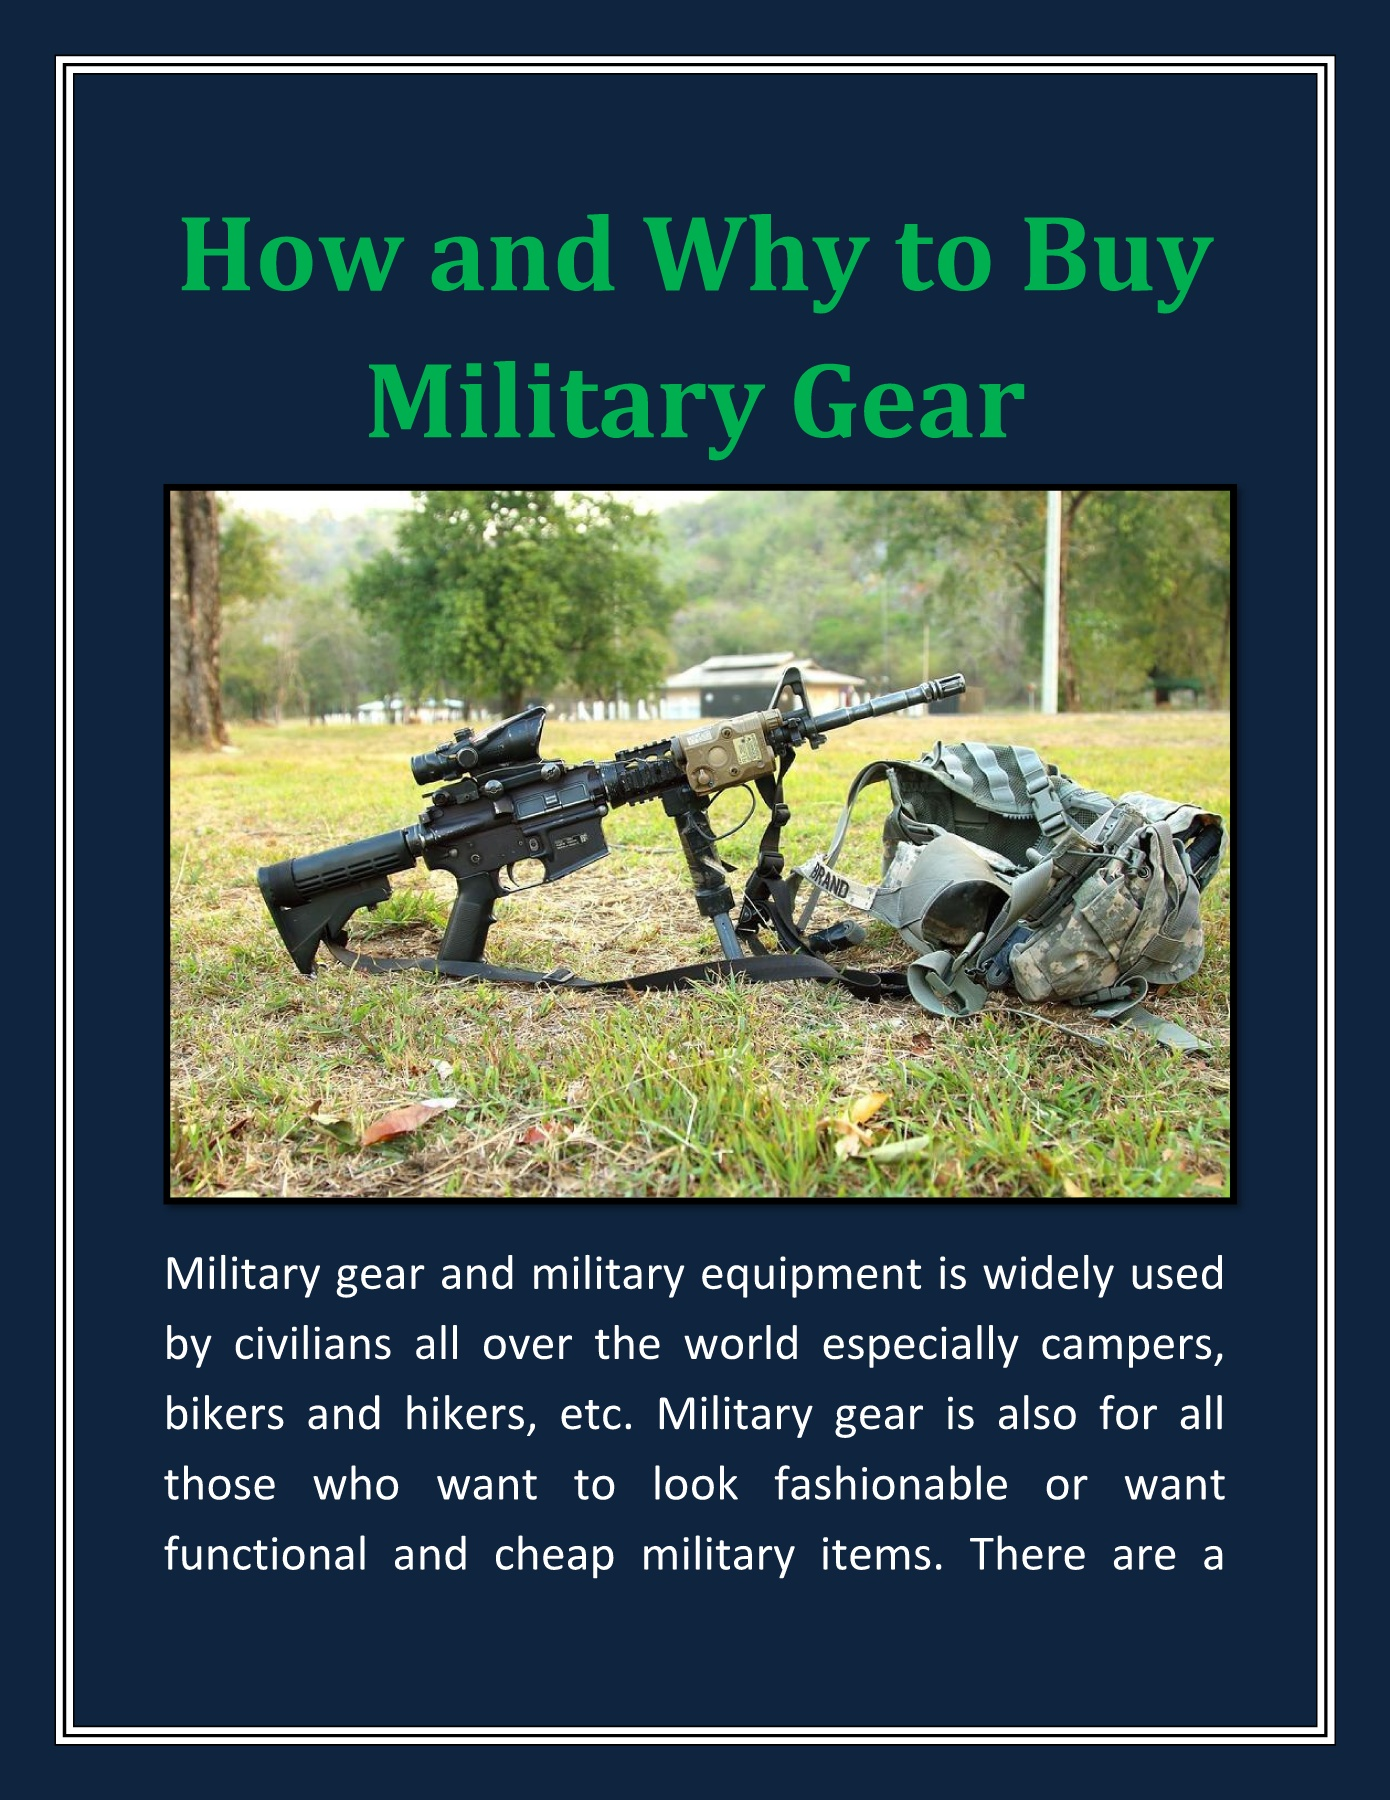 How and Why to Buy Military Gear